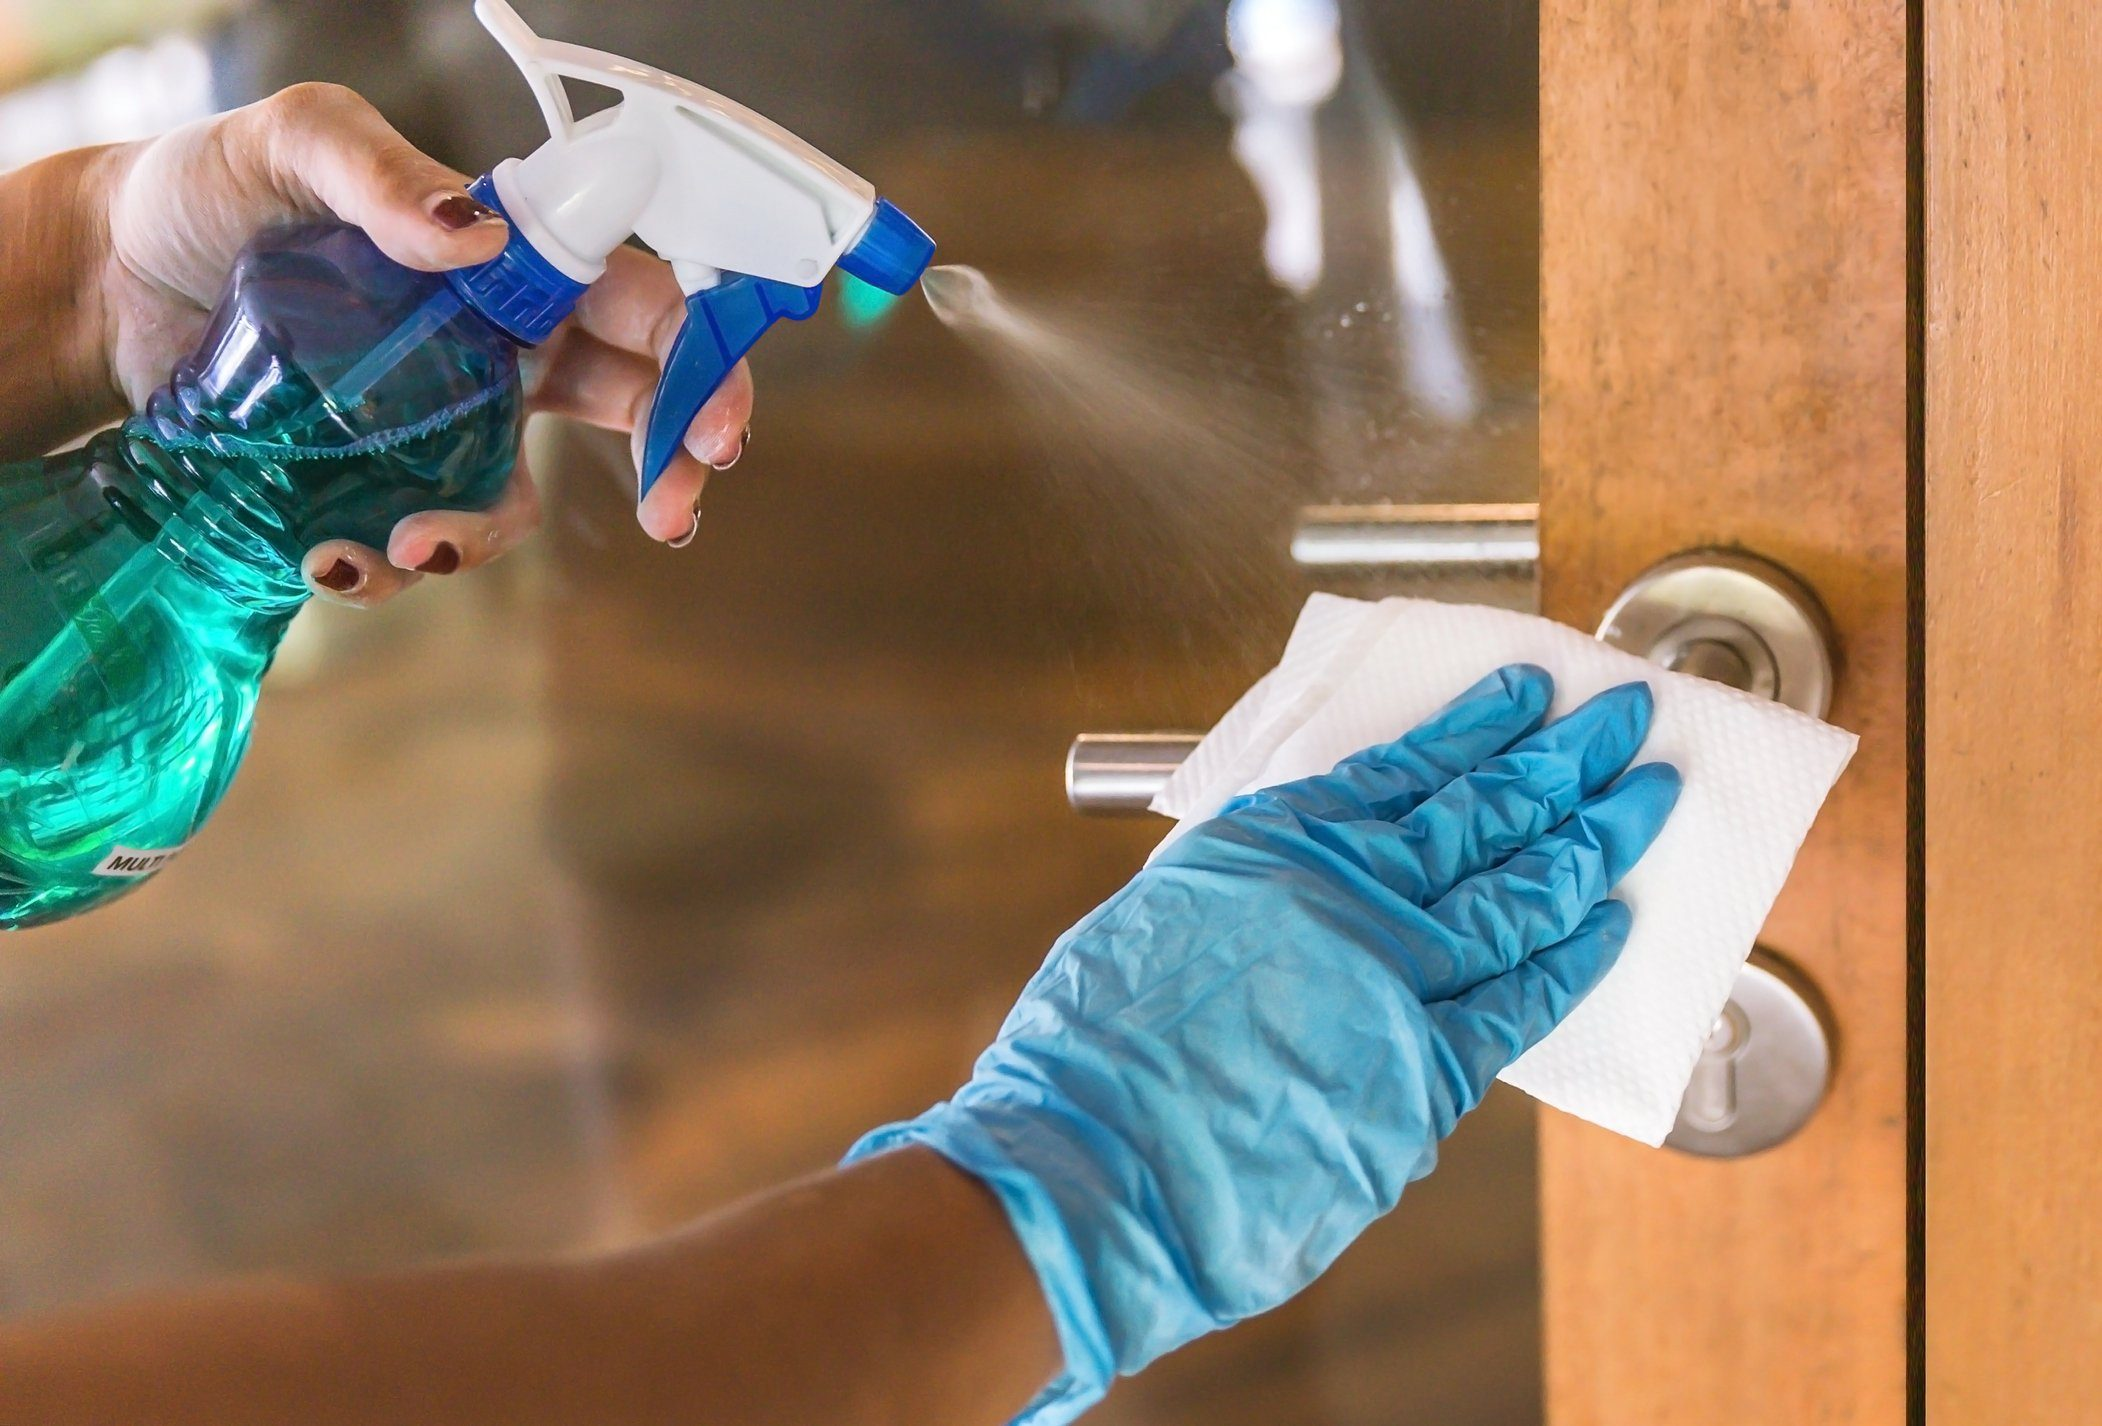 Young Asian woman sanitizing door handle with disinfectant